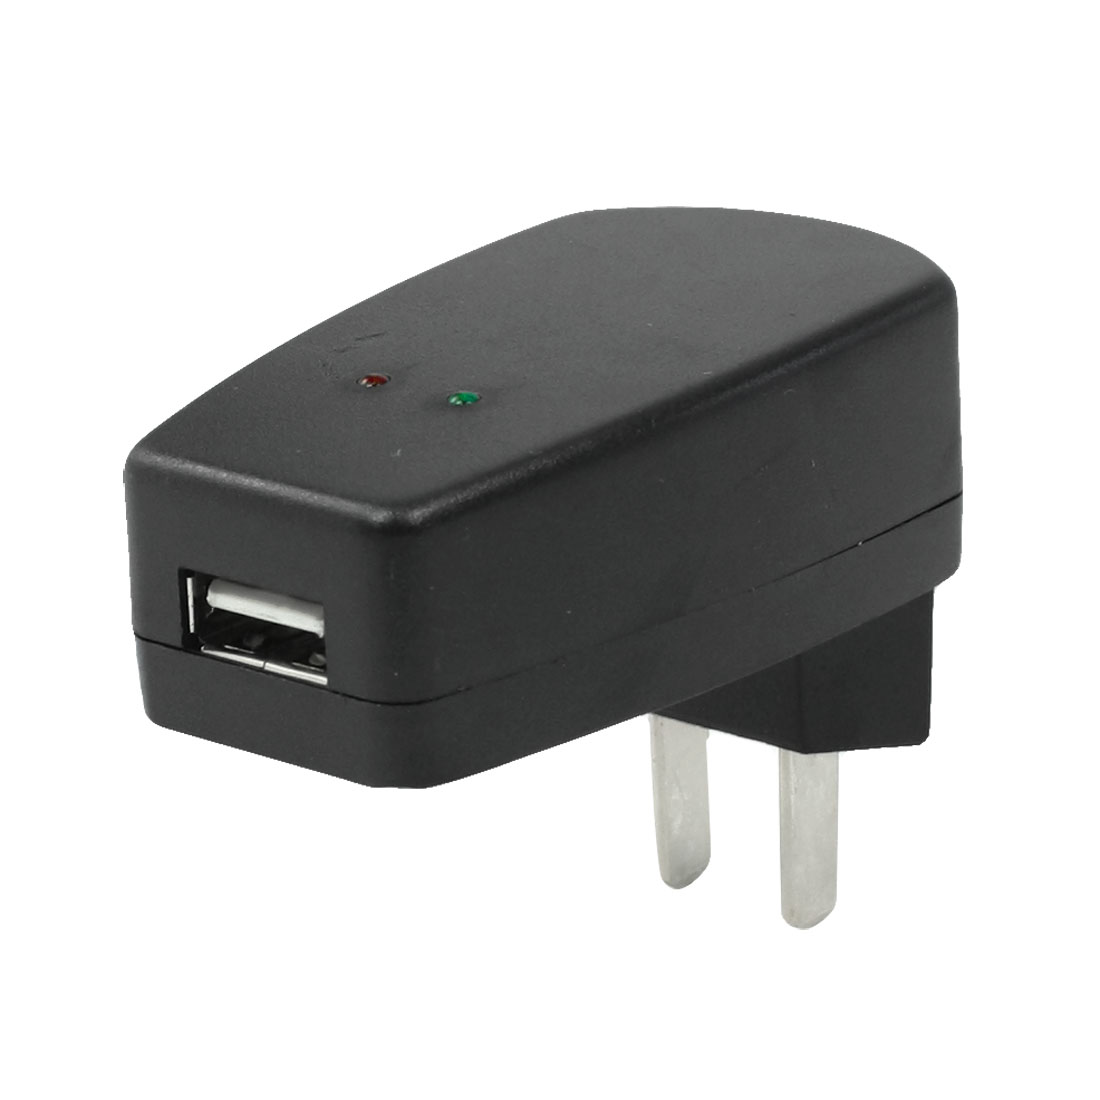 US Plug 100-240V AC/DC USB Connecting Power Charger Convertor